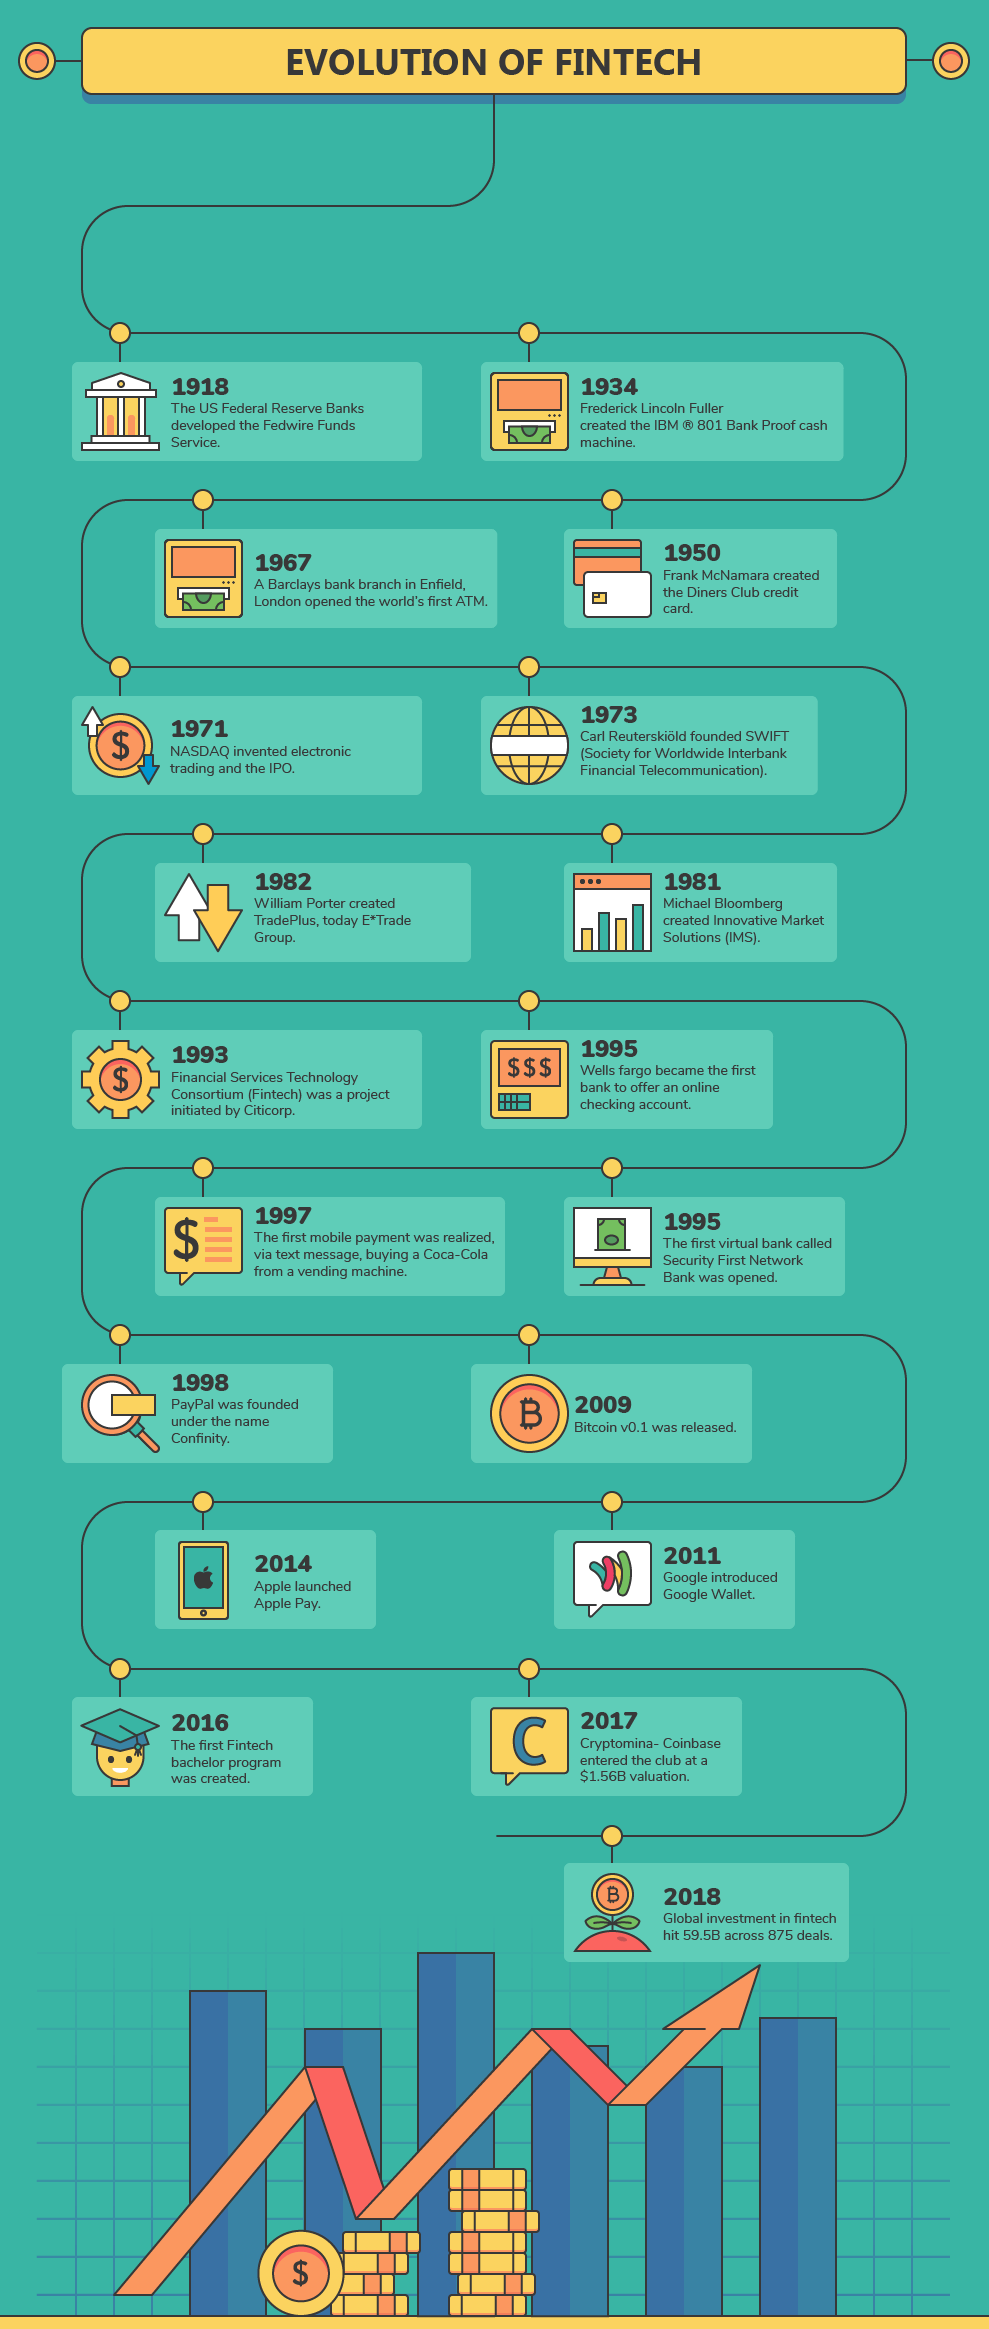 P2P Lending in Southeast Asia: 3 Risks Investors Shouldn't Overlook - Infographic Growth Fintech